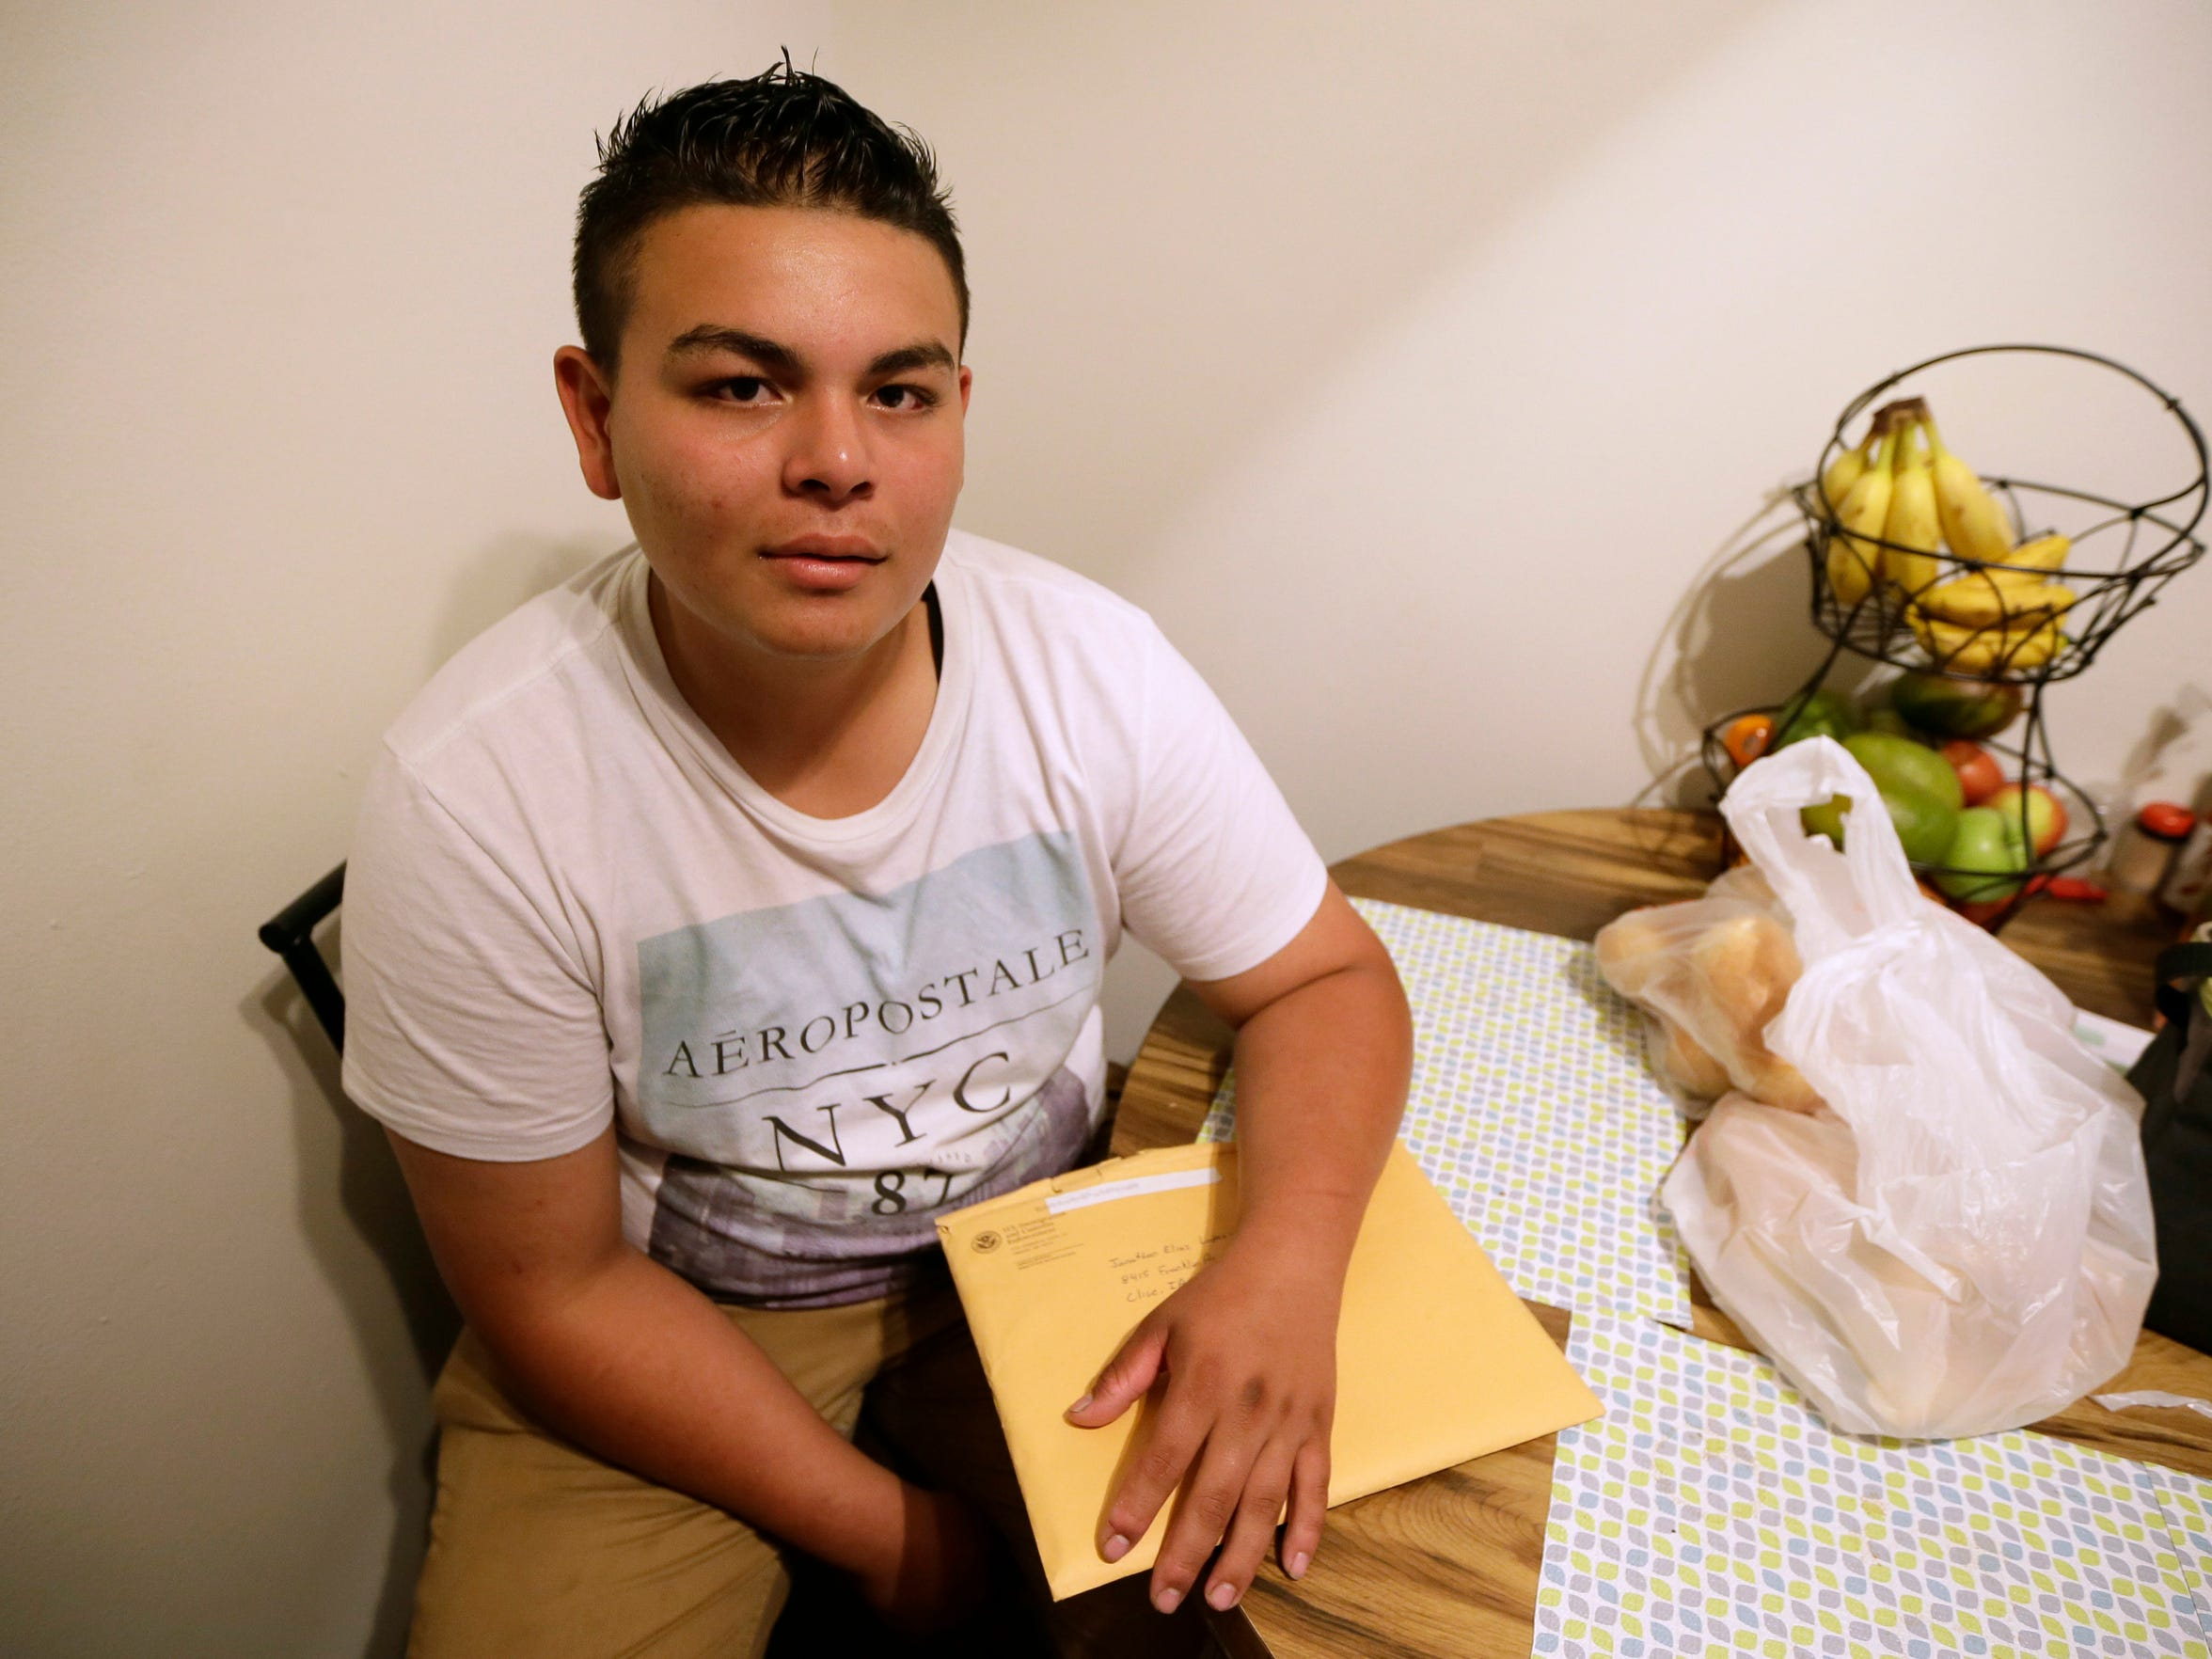 Jonathan Lopez, of Des Moines, Iowa, holds an envelope containing some of the paperwork for his asylum application on May 10 in Clive, Iowa.